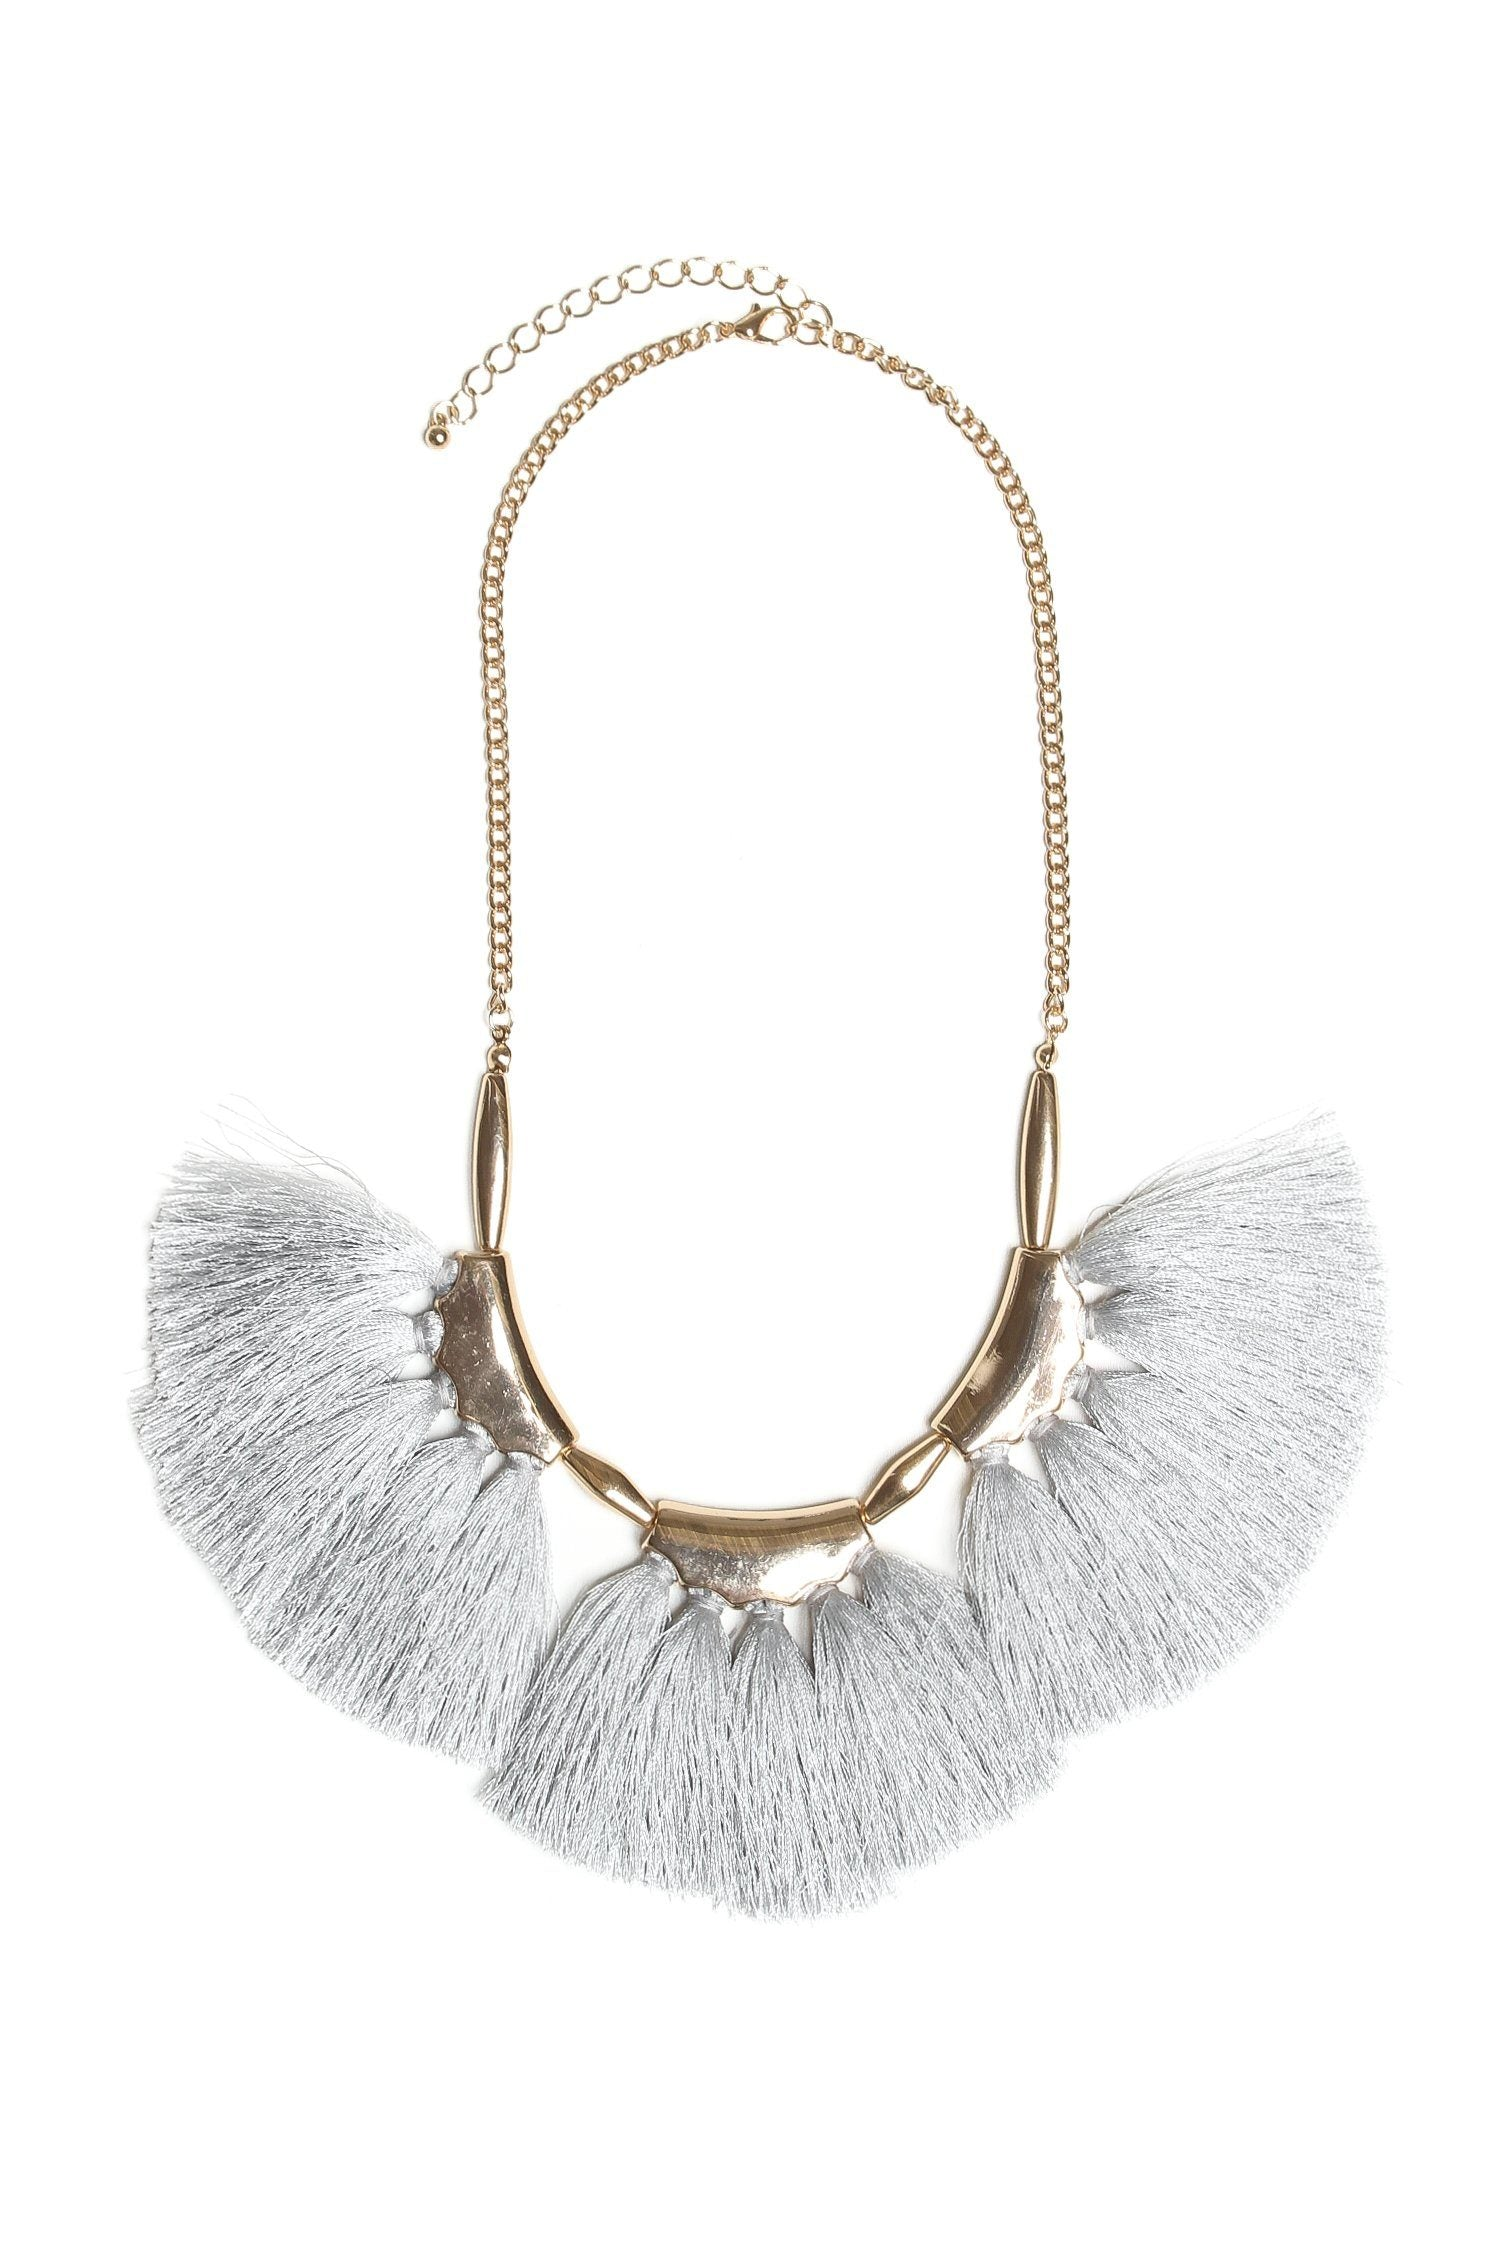 Tassel Fringe Bib Necklace